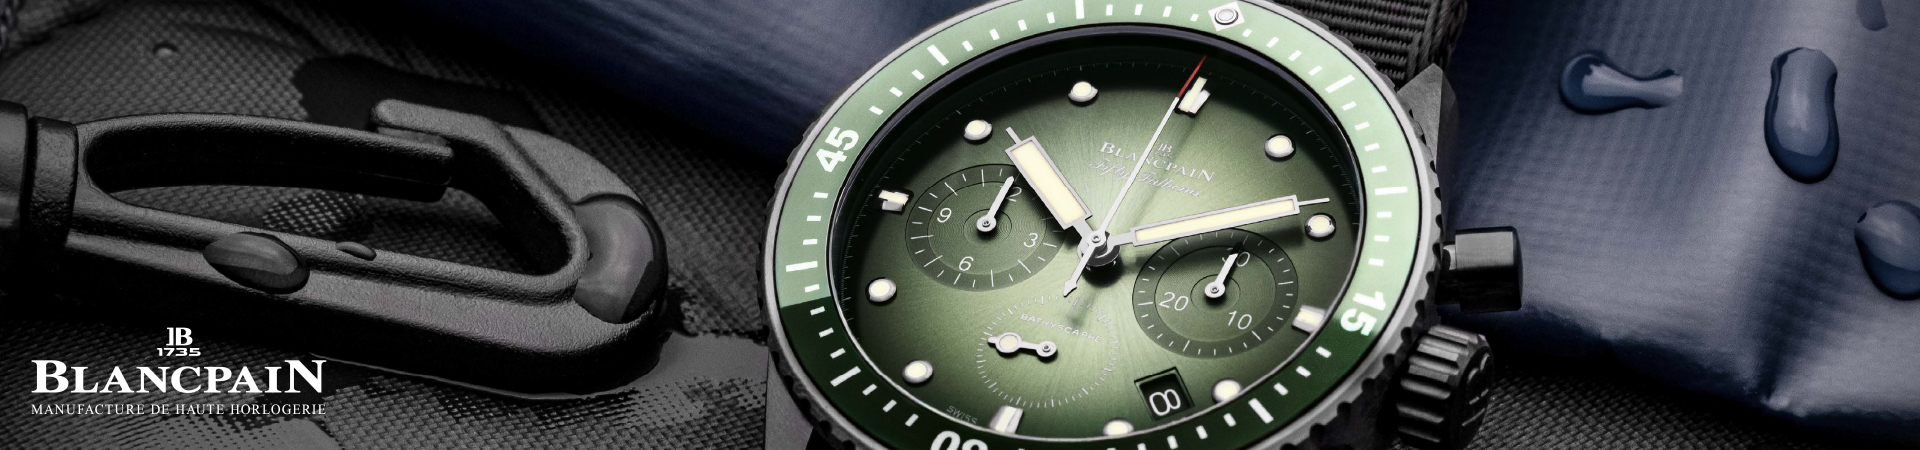 Montres Blancpain homme